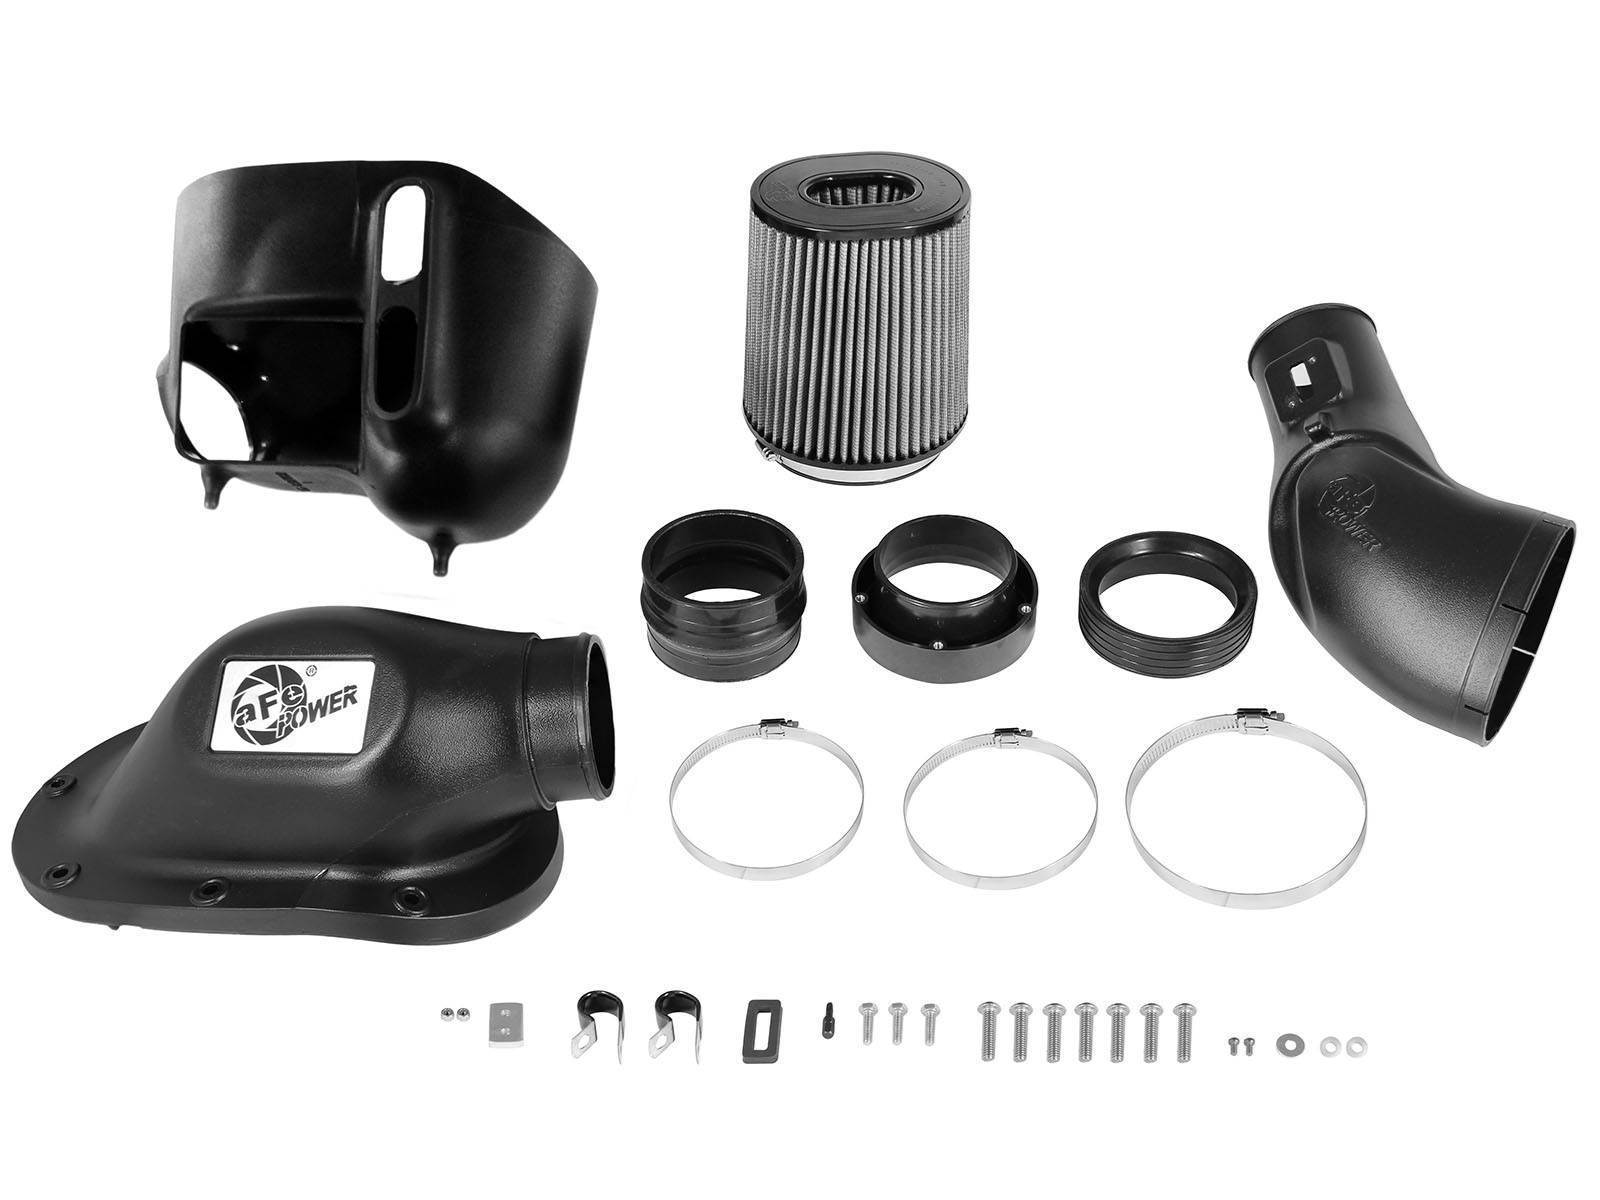 51-81872-1 - aFE Pro-Dry-S Type Si Performance Cold Air Intake System for 2011-2016 Ford Powerstroke diesels